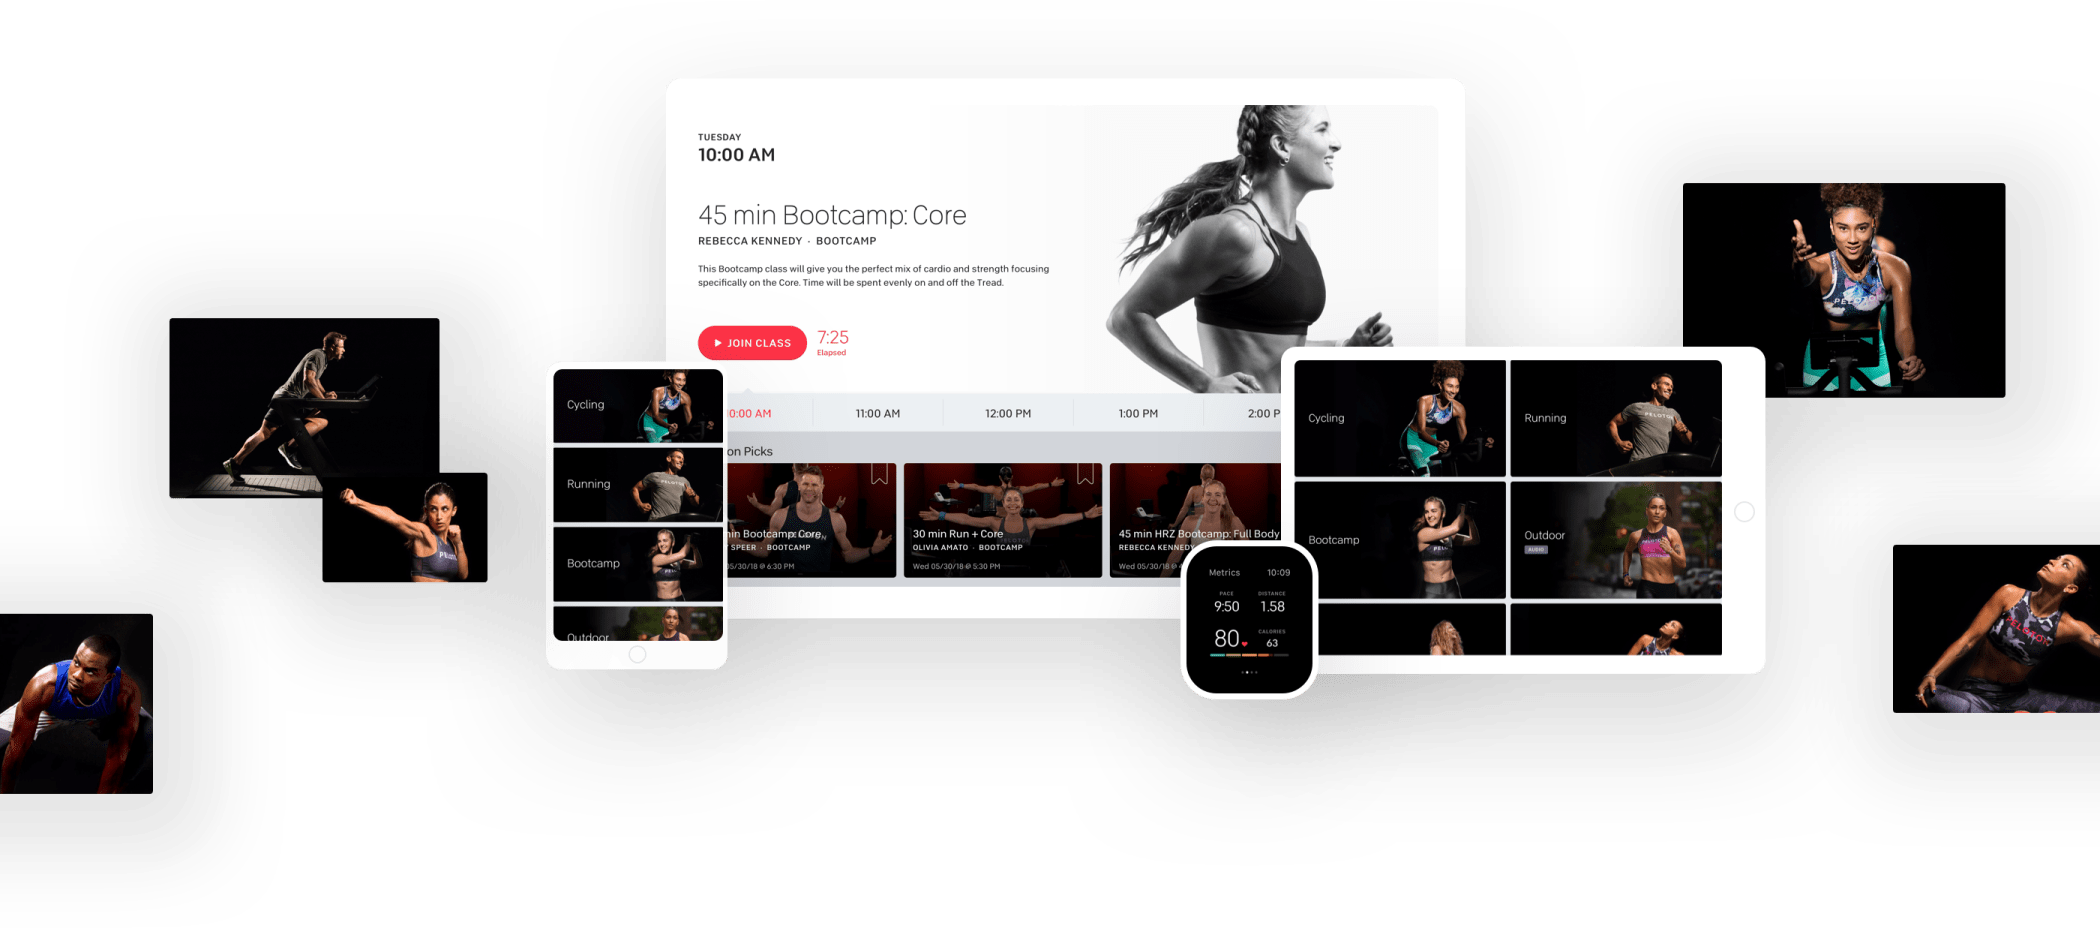 Peloton: Free 90-day subscription trial for its at-home workout App